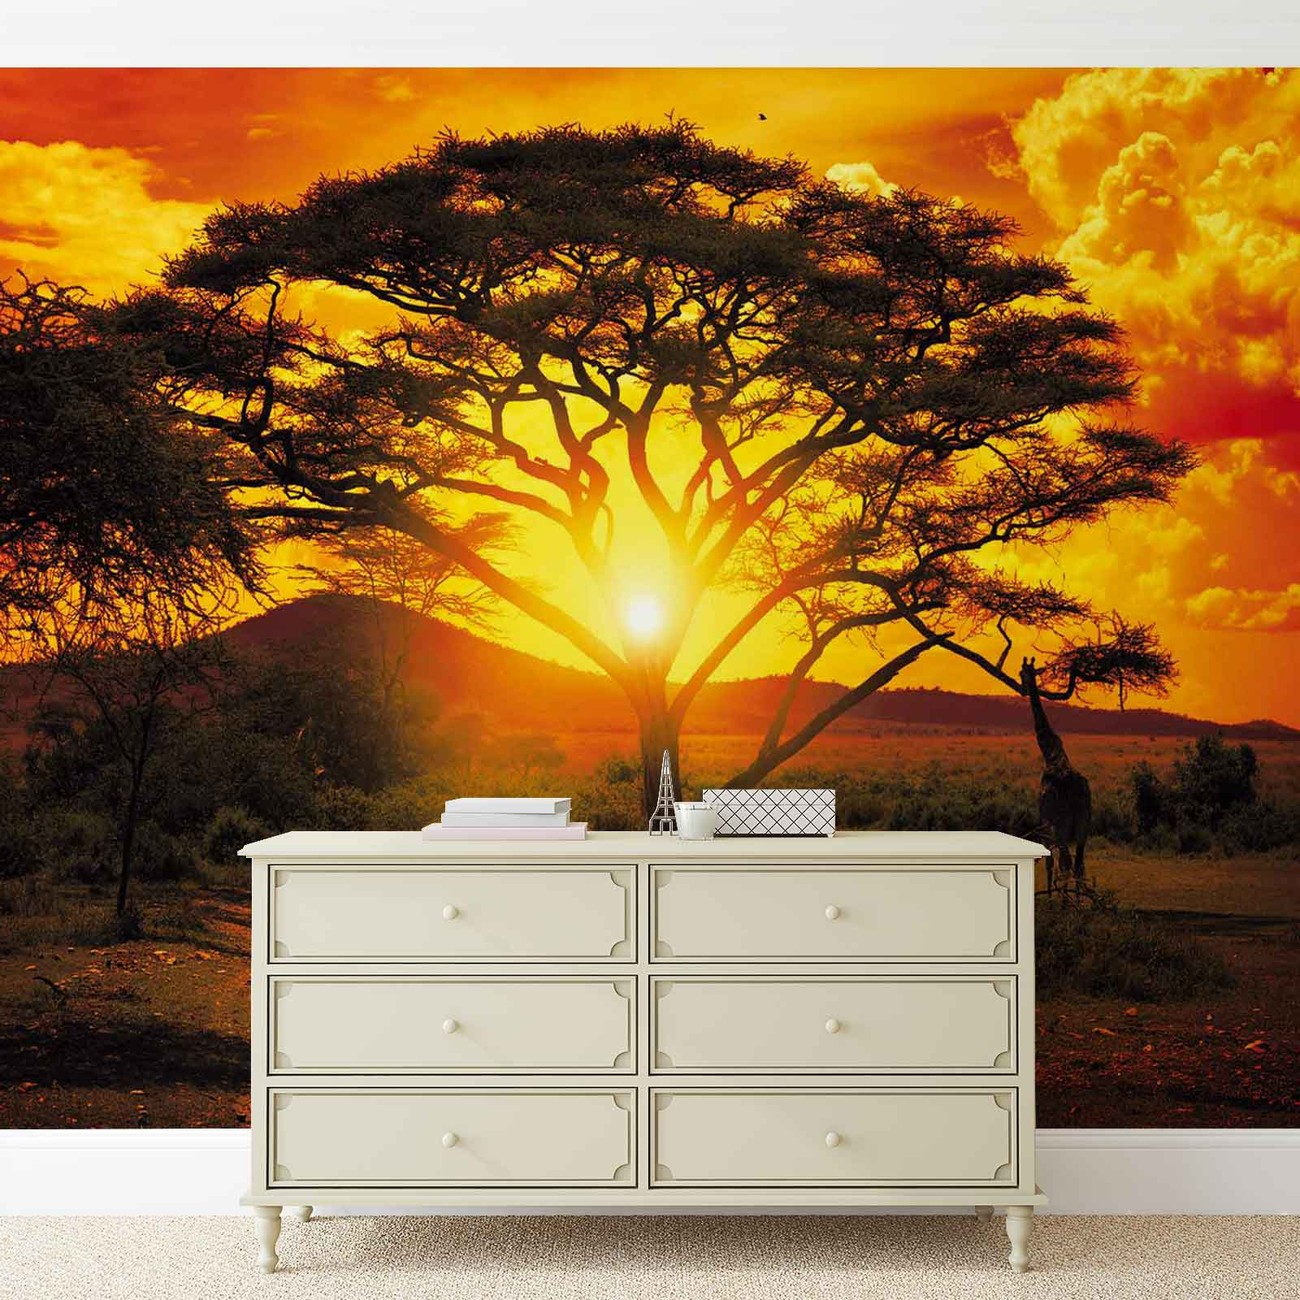 Sunset africa nature tree wall paper mural buy at for Mural nature